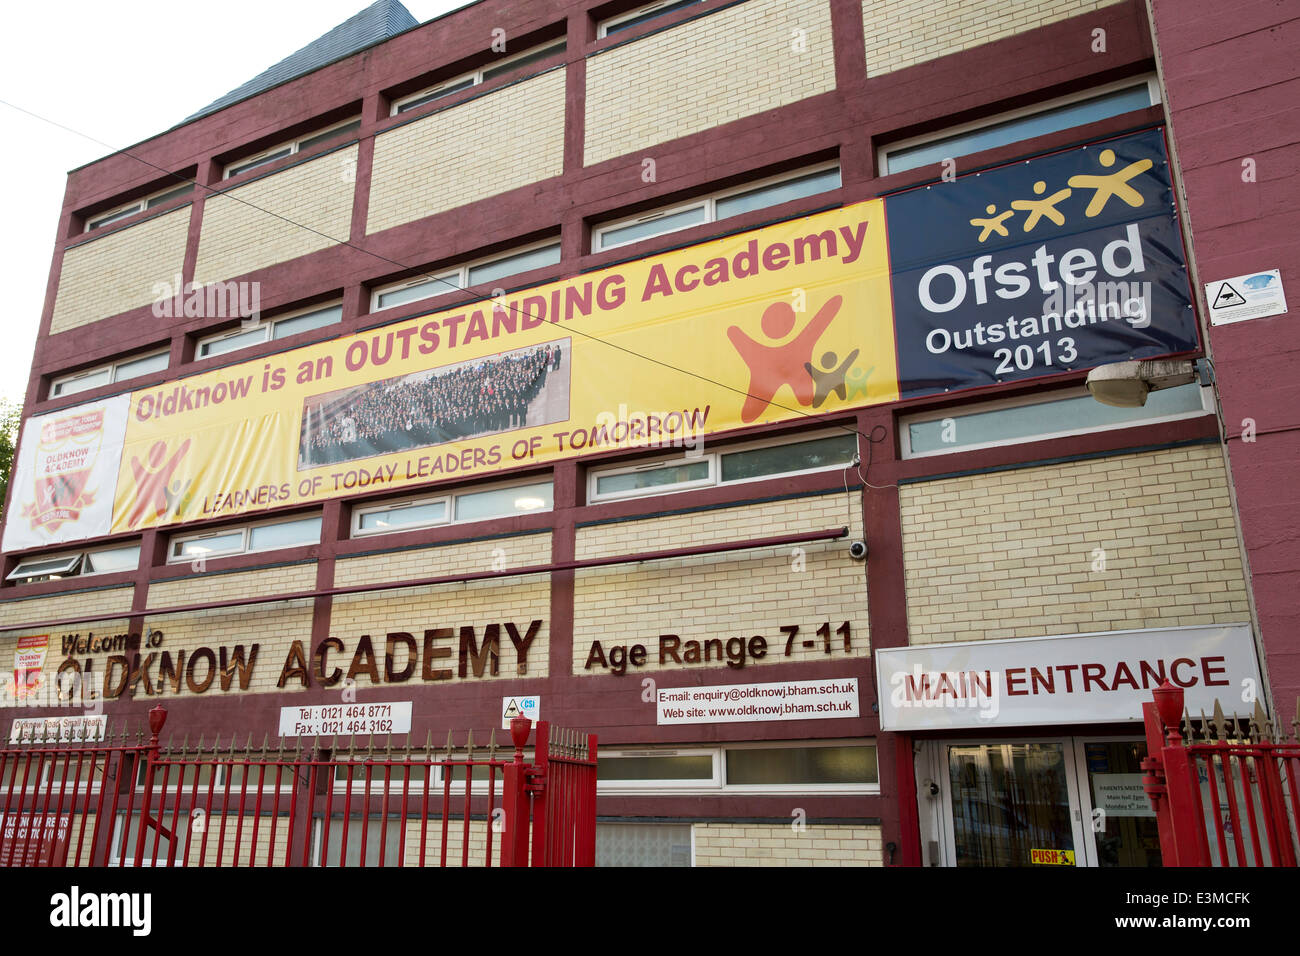 Oldknow Academy Birmingham. The school was one of five schools in the so called 'Trojan' scandal - Stock Image